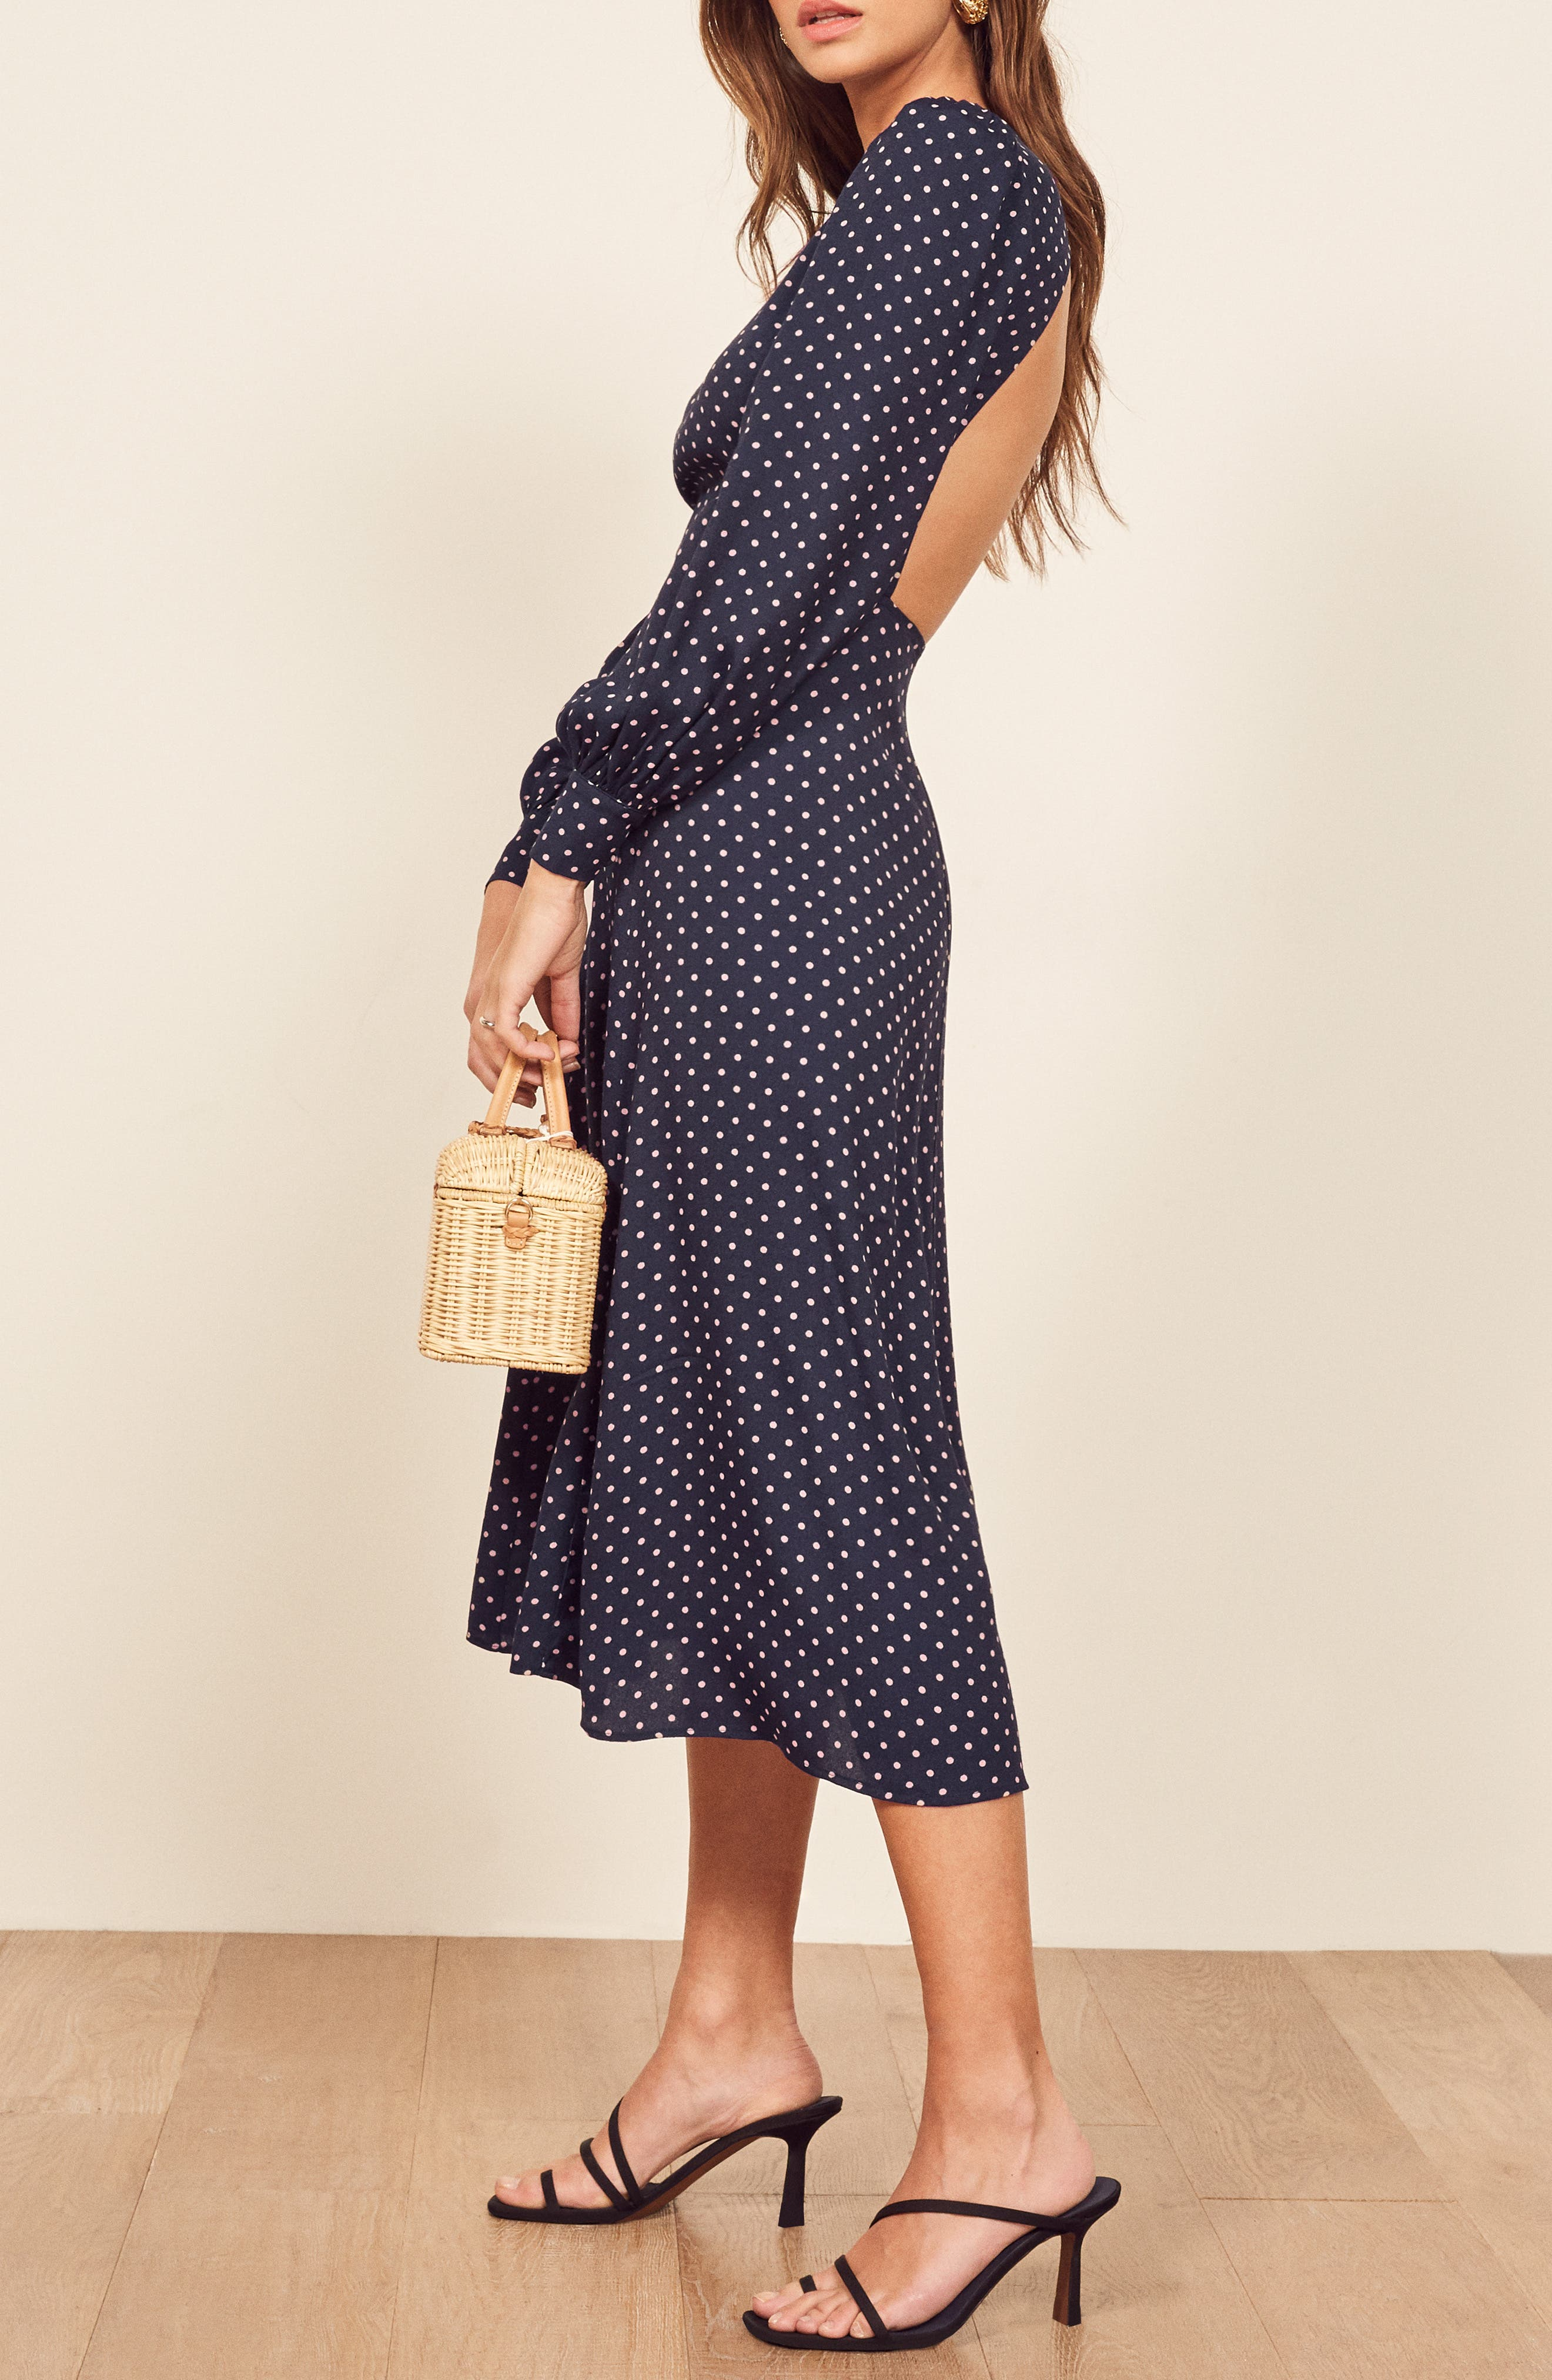 REFORMATION, Abigaile Long Sleeve Dress, Alternate thumbnail 5, color, AFTERNOON